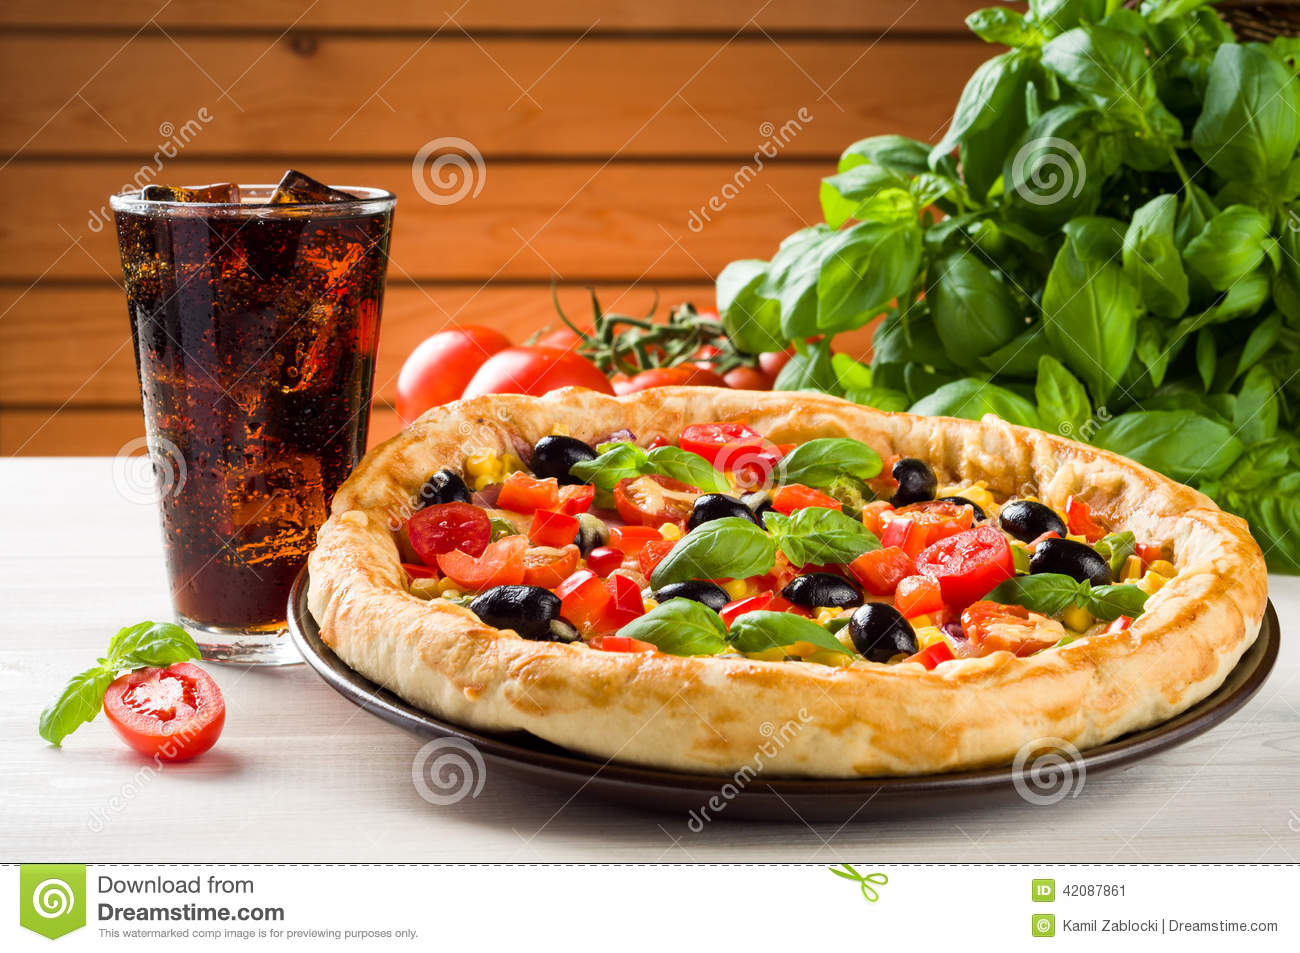 Wallpaper Hd 1080p Free Download Pizza And Coke Stock Image Image Of Brown Dough